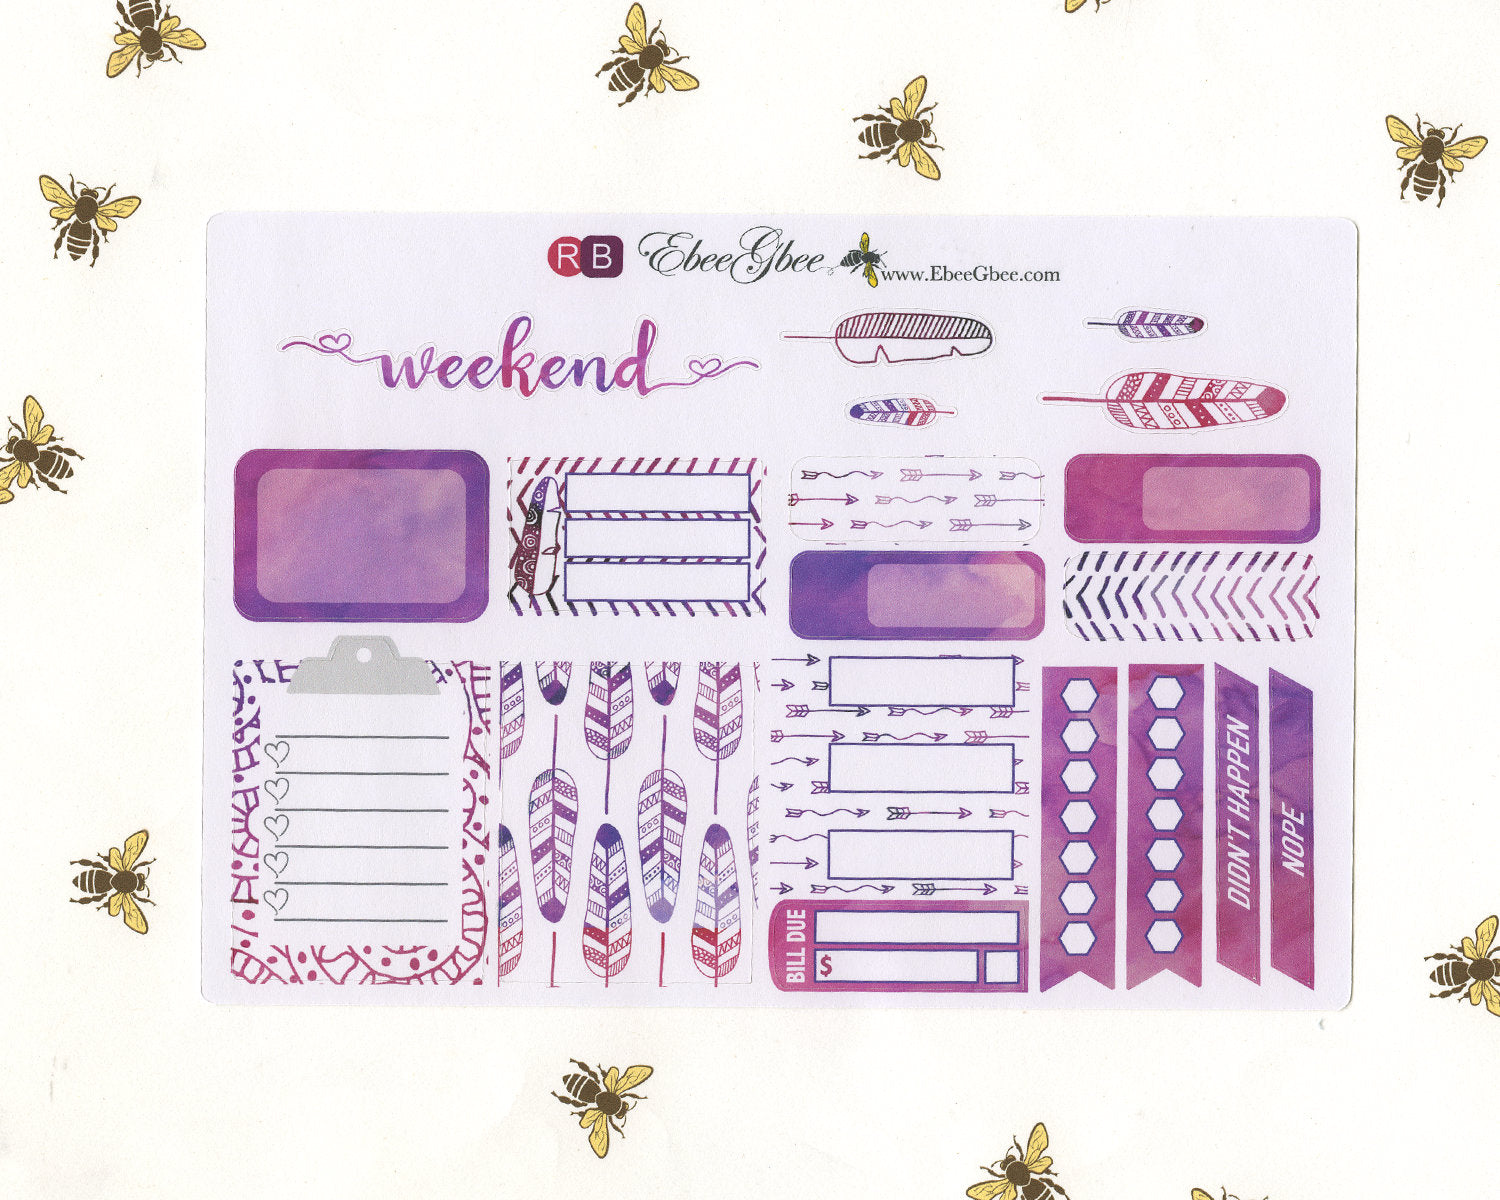 FEATHER SAMPLER Weekly Planner Sticker Set | Rose Bougainvilla